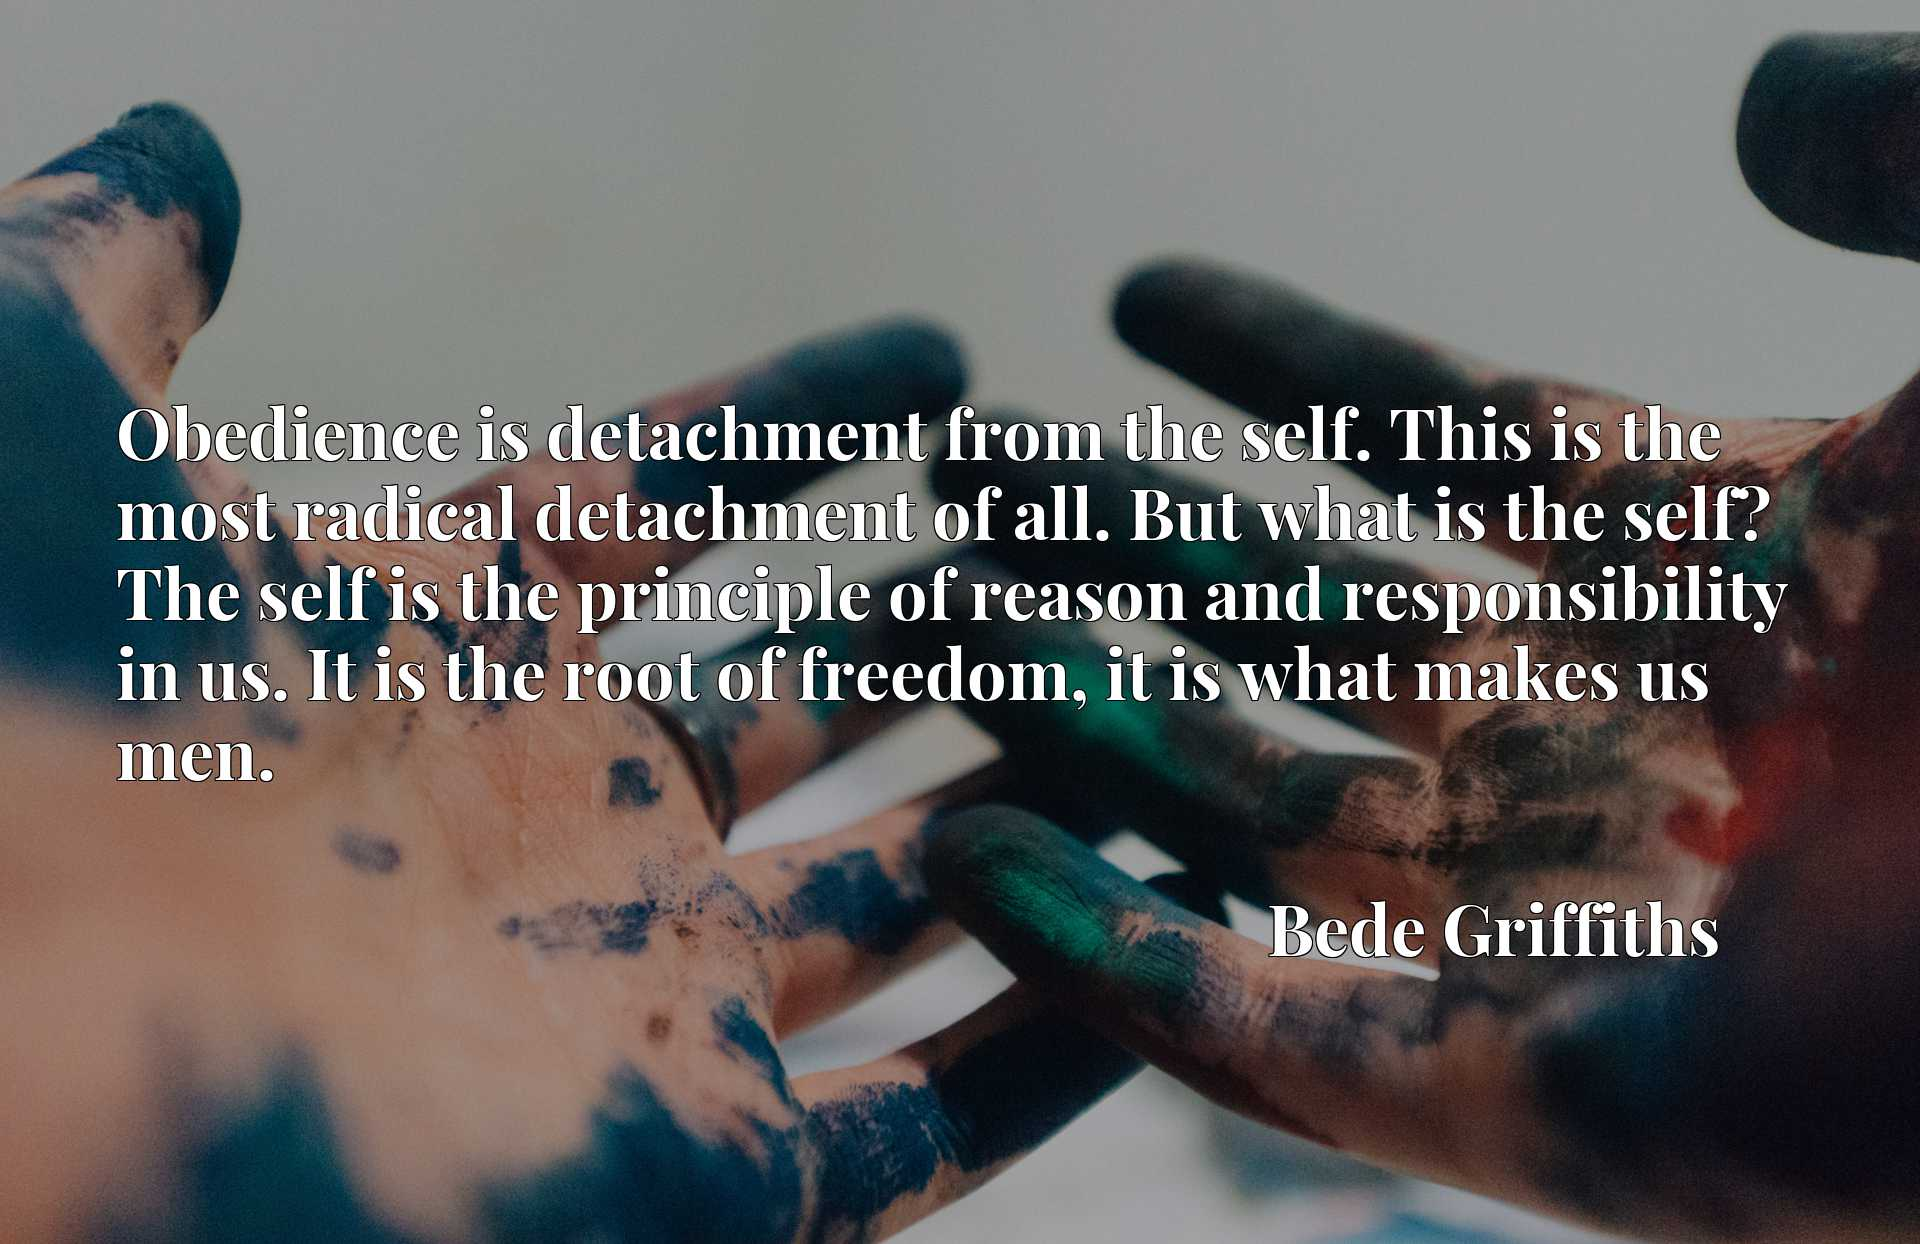 Obedience is detachment from the self. This is the most radical detachment of all. But what is the self? The self is the principle of reason and responsibility in us. It is the root of freedom, it is what makes us men.